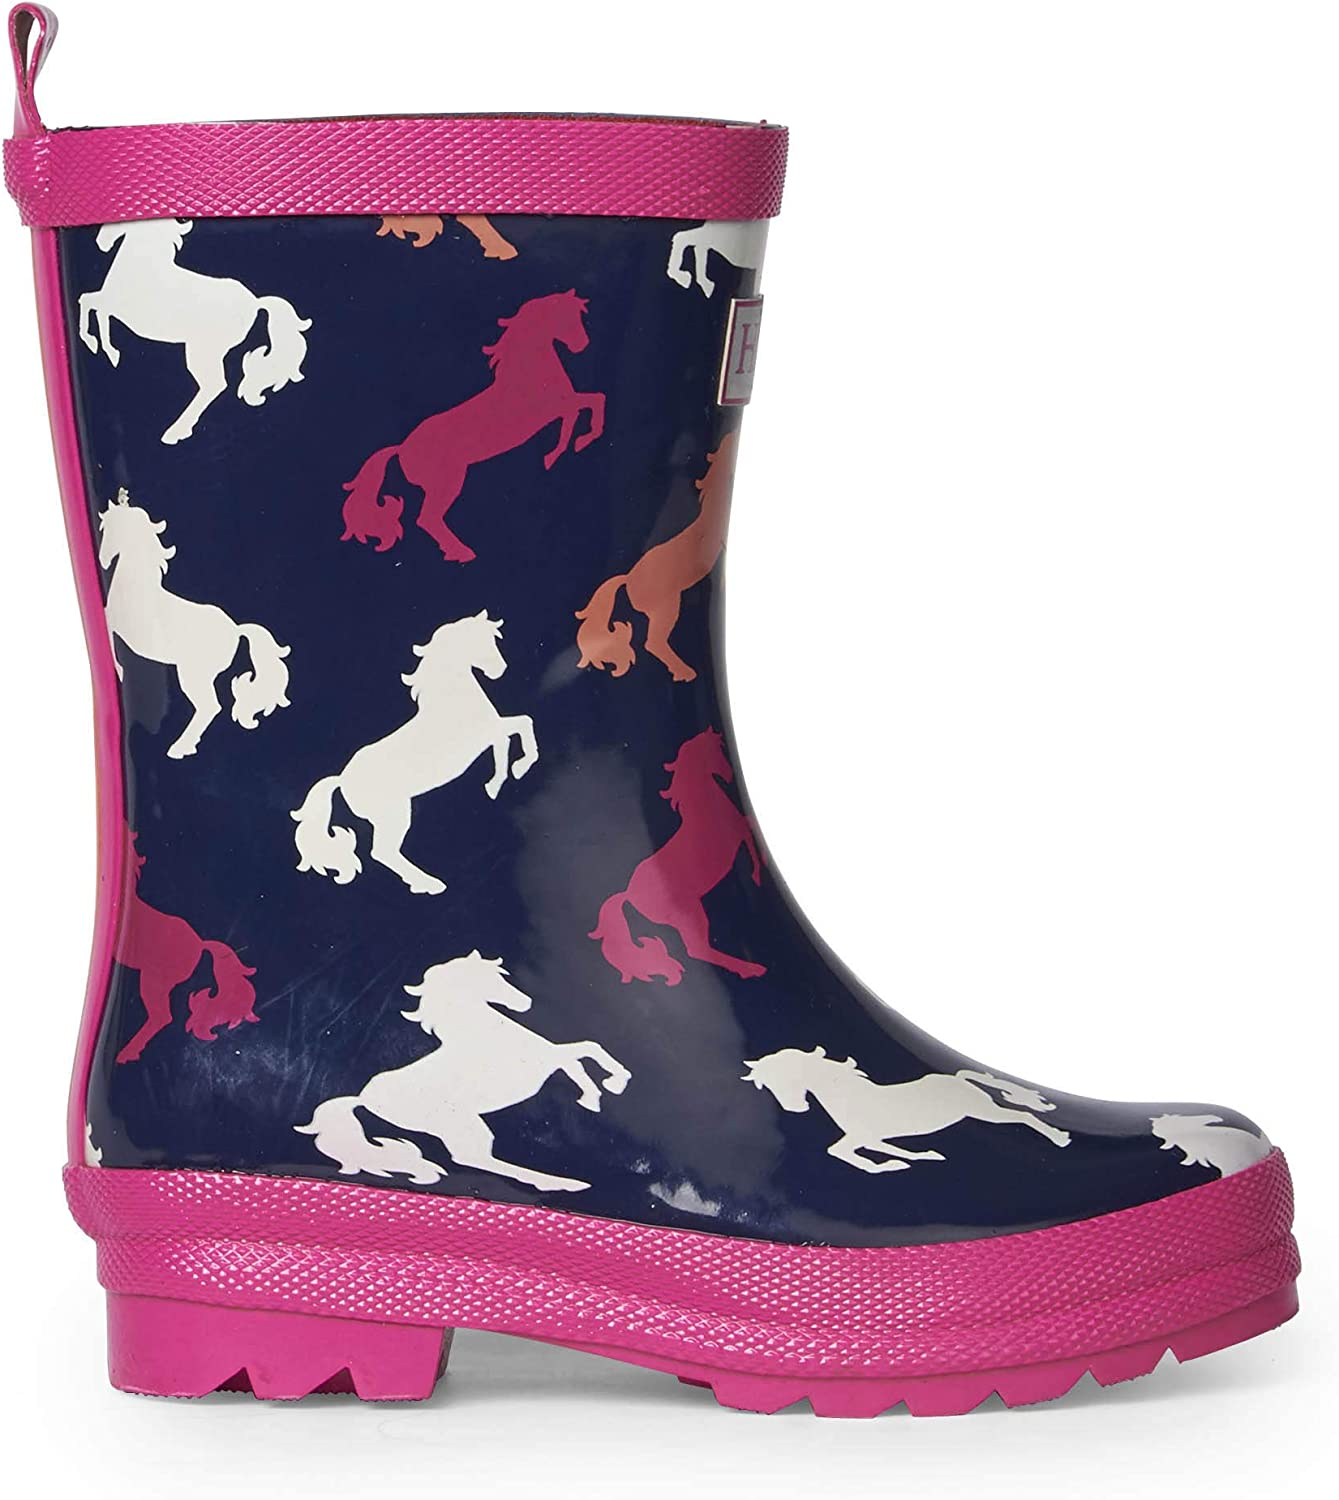 Hatley Girls Little Kid Printed Rain Boots 4-8 Years